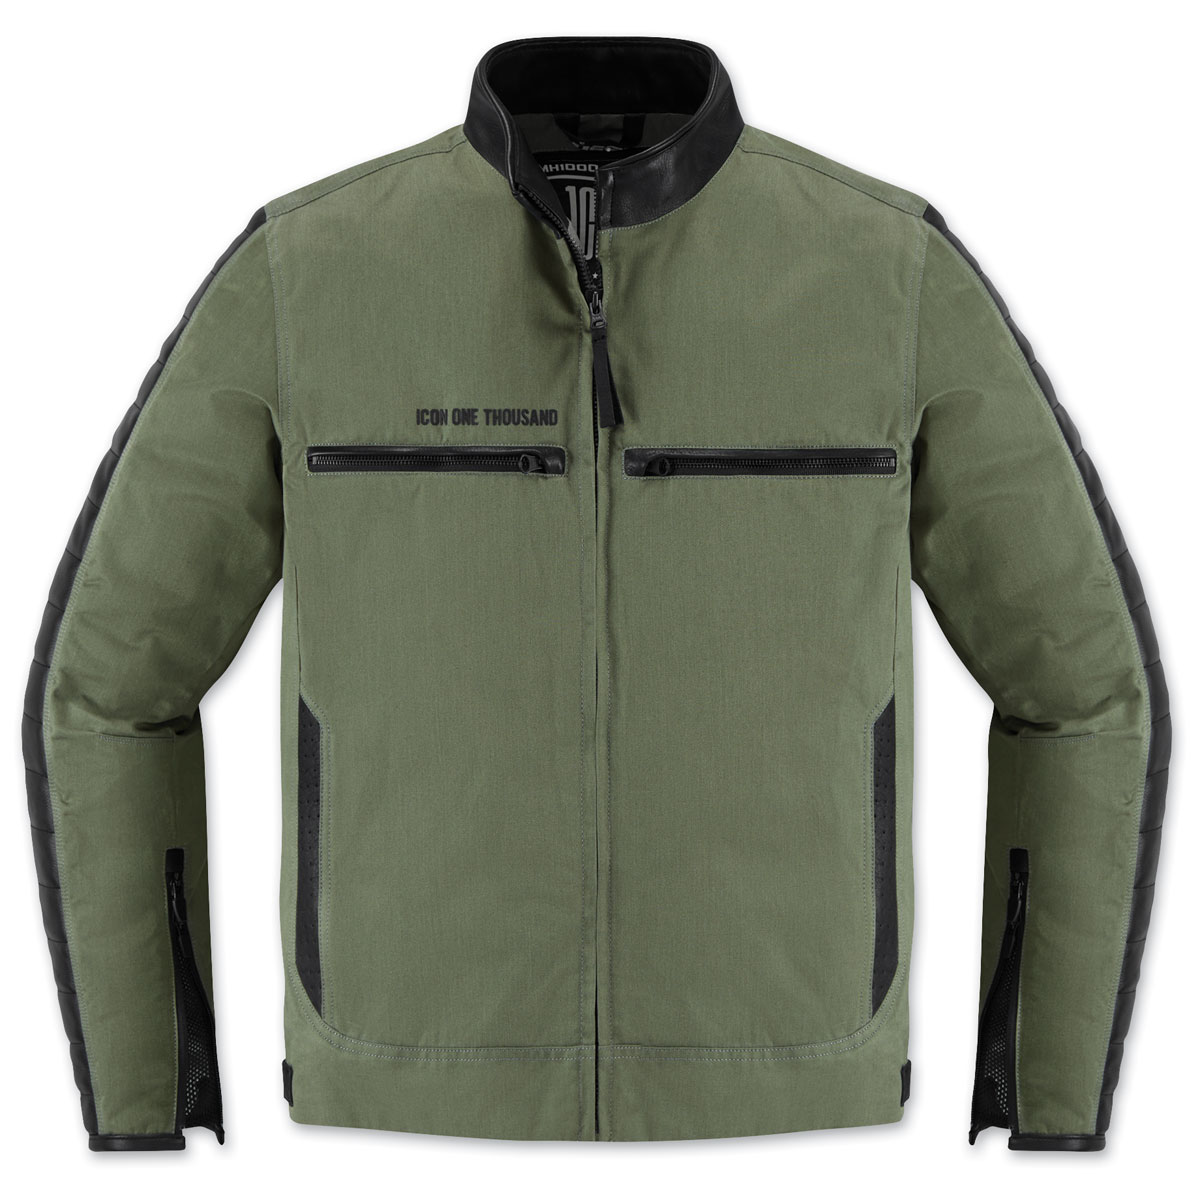 ICON One Thousand Men's MH 1000 Green Textile Jacket